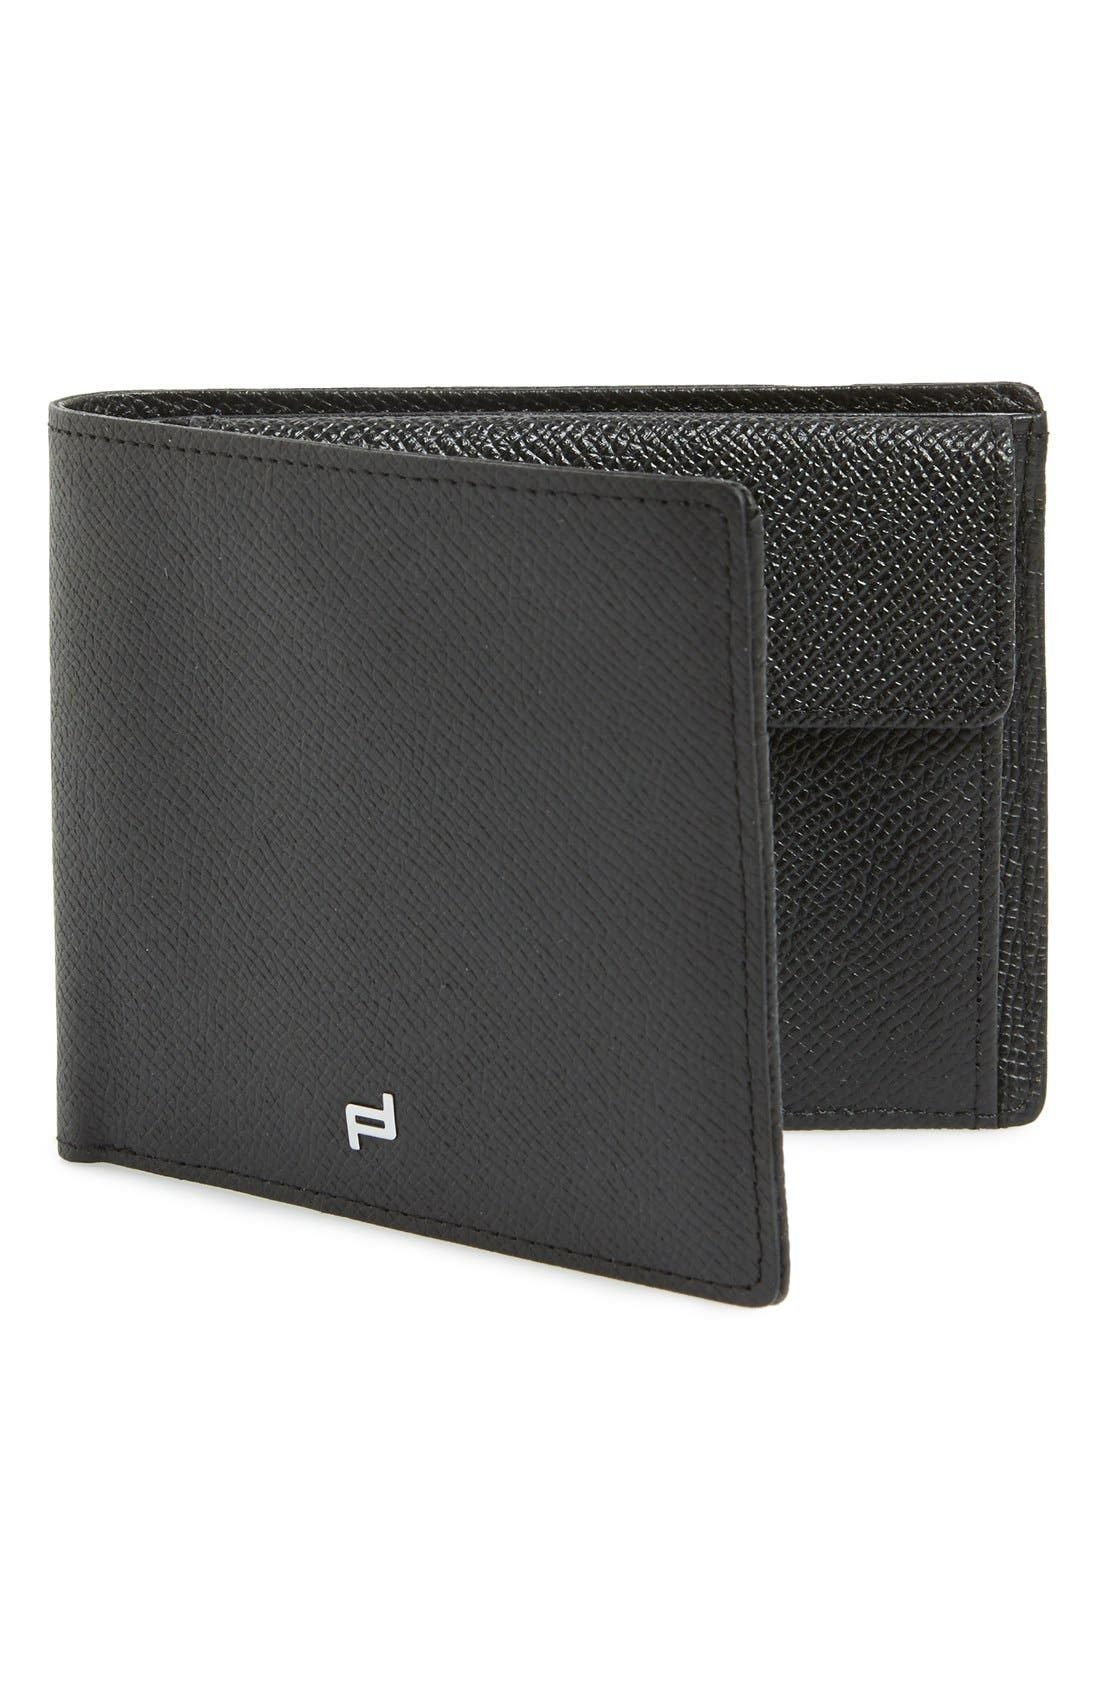 'French Classic 3.0' Leather Billfold Wallet,                             Main thumbnail 1, color,